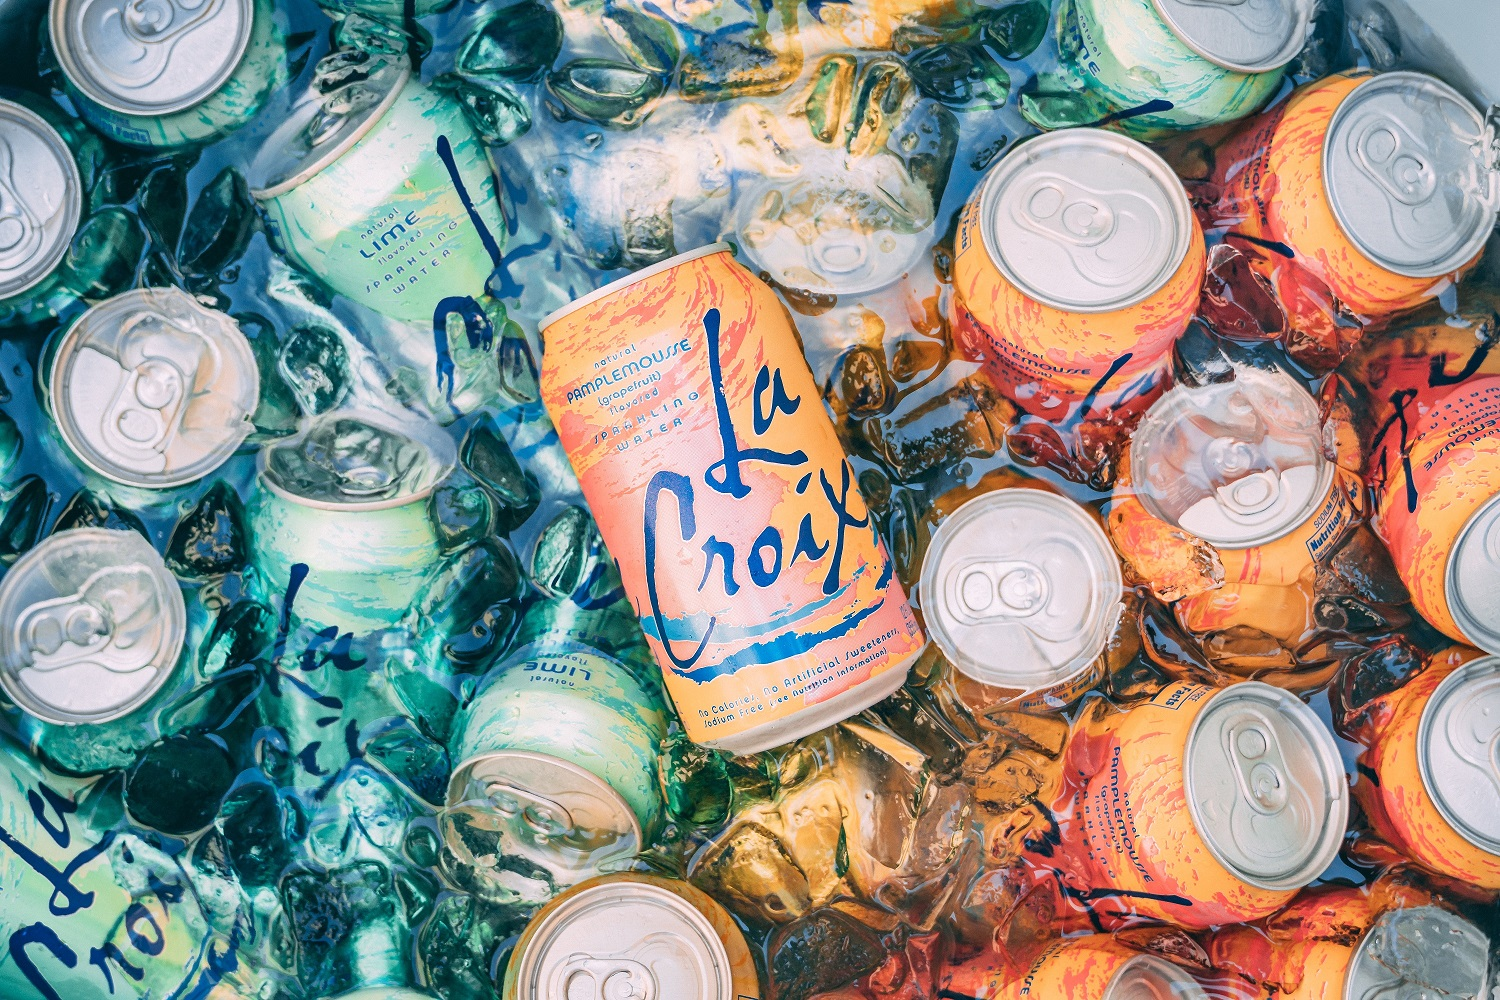 BEAUMONT COSTALES FILES CLASS ACTION LAWSUIT AGAINST LACROIX WATER